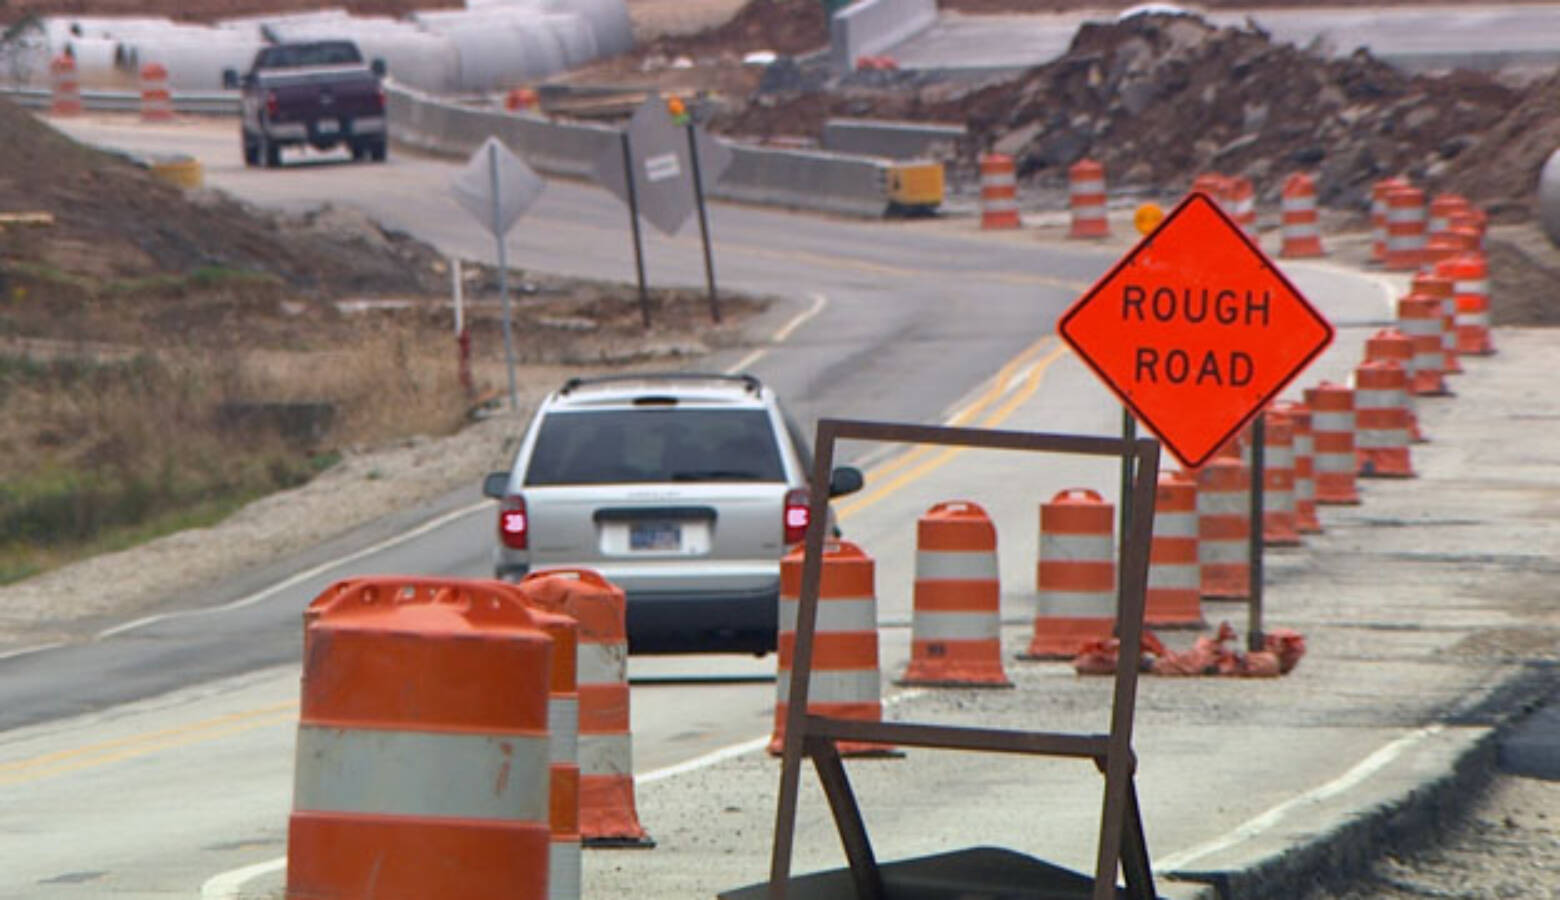 Legislation would allow the Indiana Department of Transportation to set up speed cameras in four work zones statewide. (WFIU/WTIU)